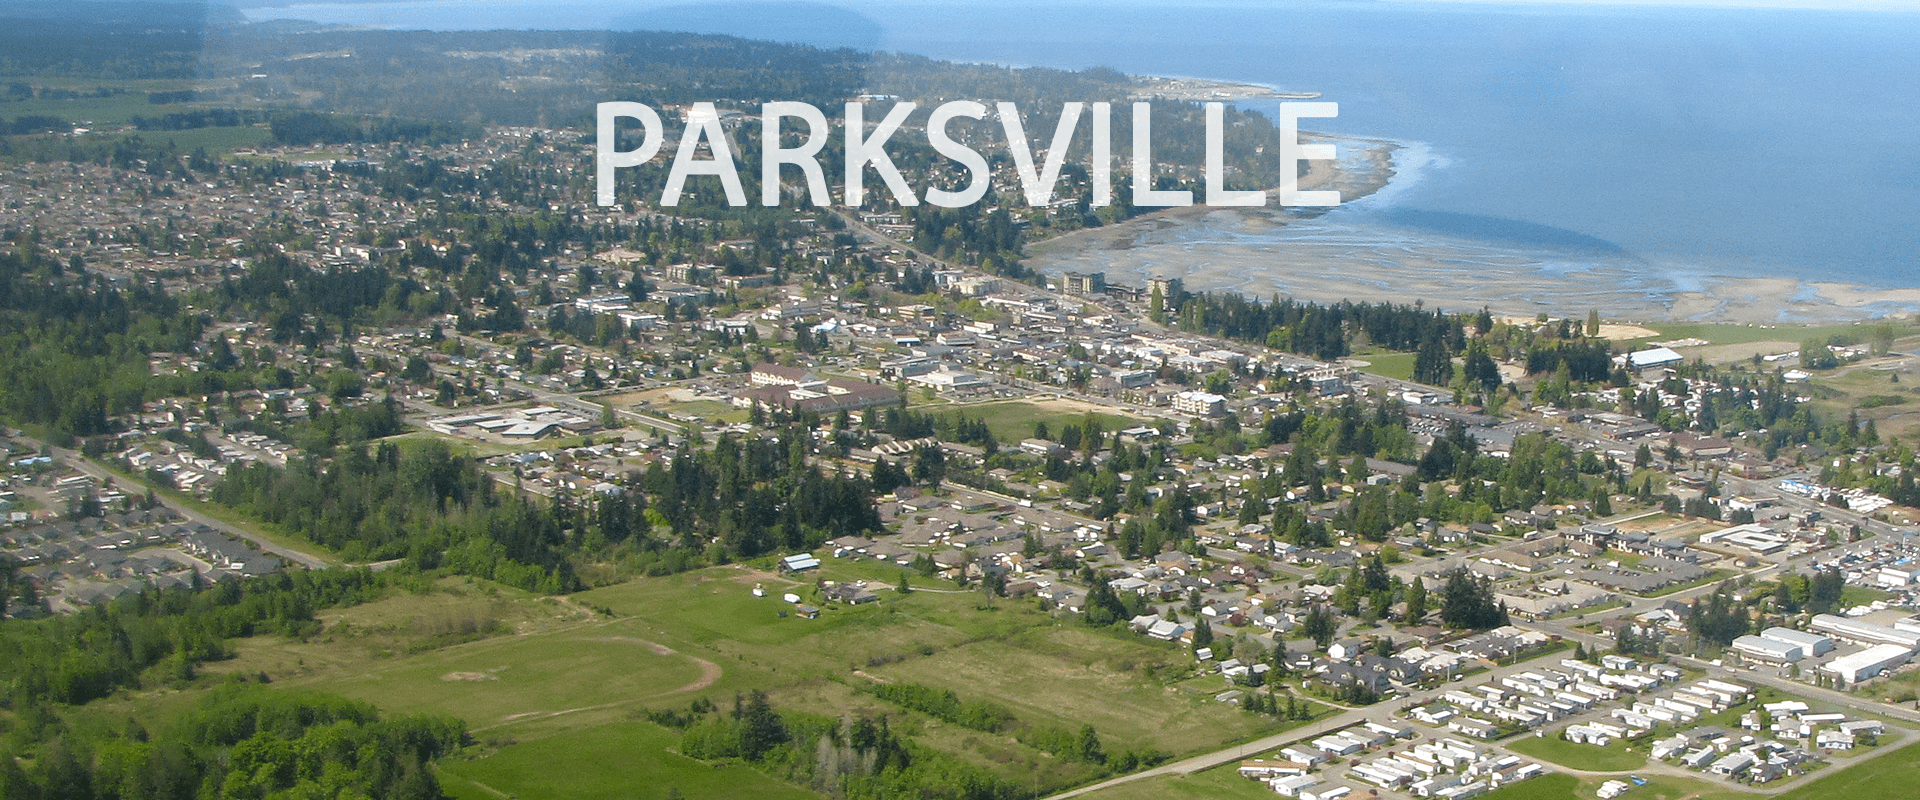 Parksville Careers